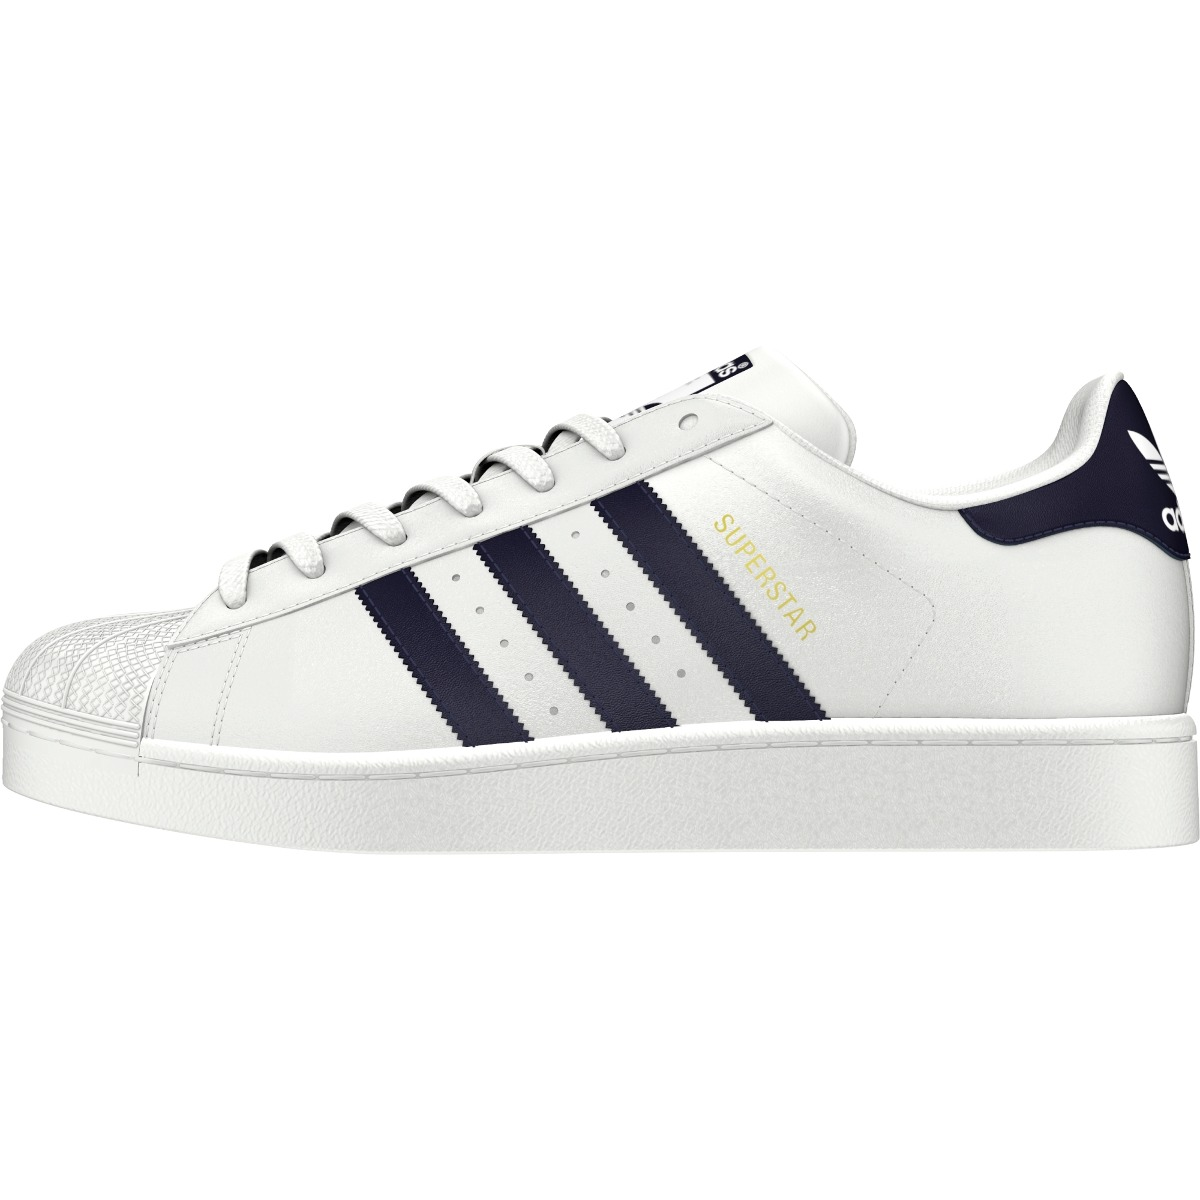 cheap for discount 22740 3e785 zapatillas adidas originals superstar hombre cm8082. Cargando zoom.